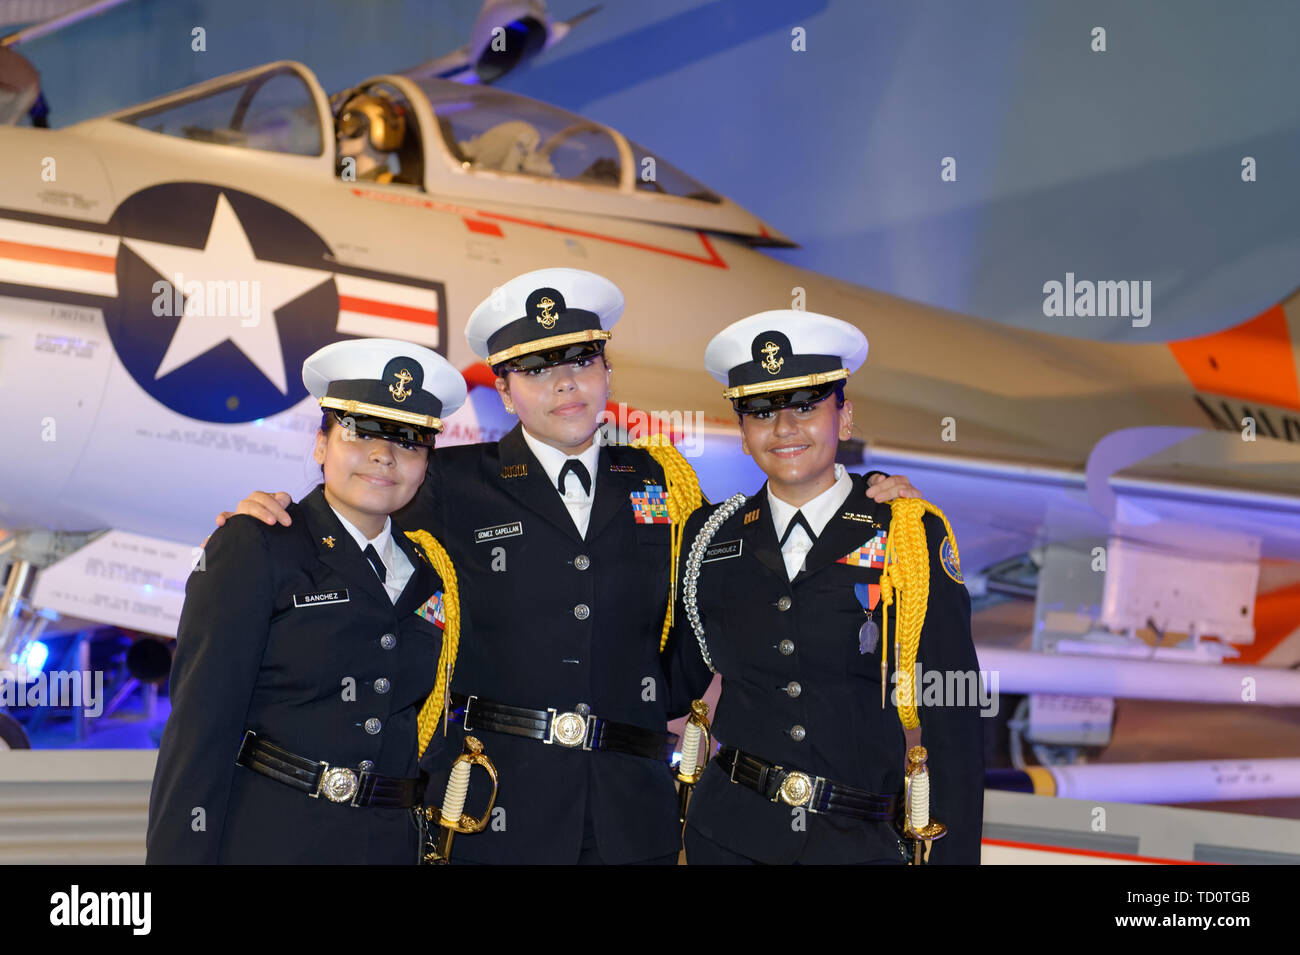 Garden City, New York, USA. 6th June, 2019. Three Freeport High School Navy Junior ROTC cadets wearing uniforms and about to participate at Apollo at 50 Anniversary Dinner at Cradle of Aviation Museum, pose for photo in front of historic aircraft at museum exhibit. Credit: Ann Parry/ZUMA Wire/Alamy Live News - Stock Image